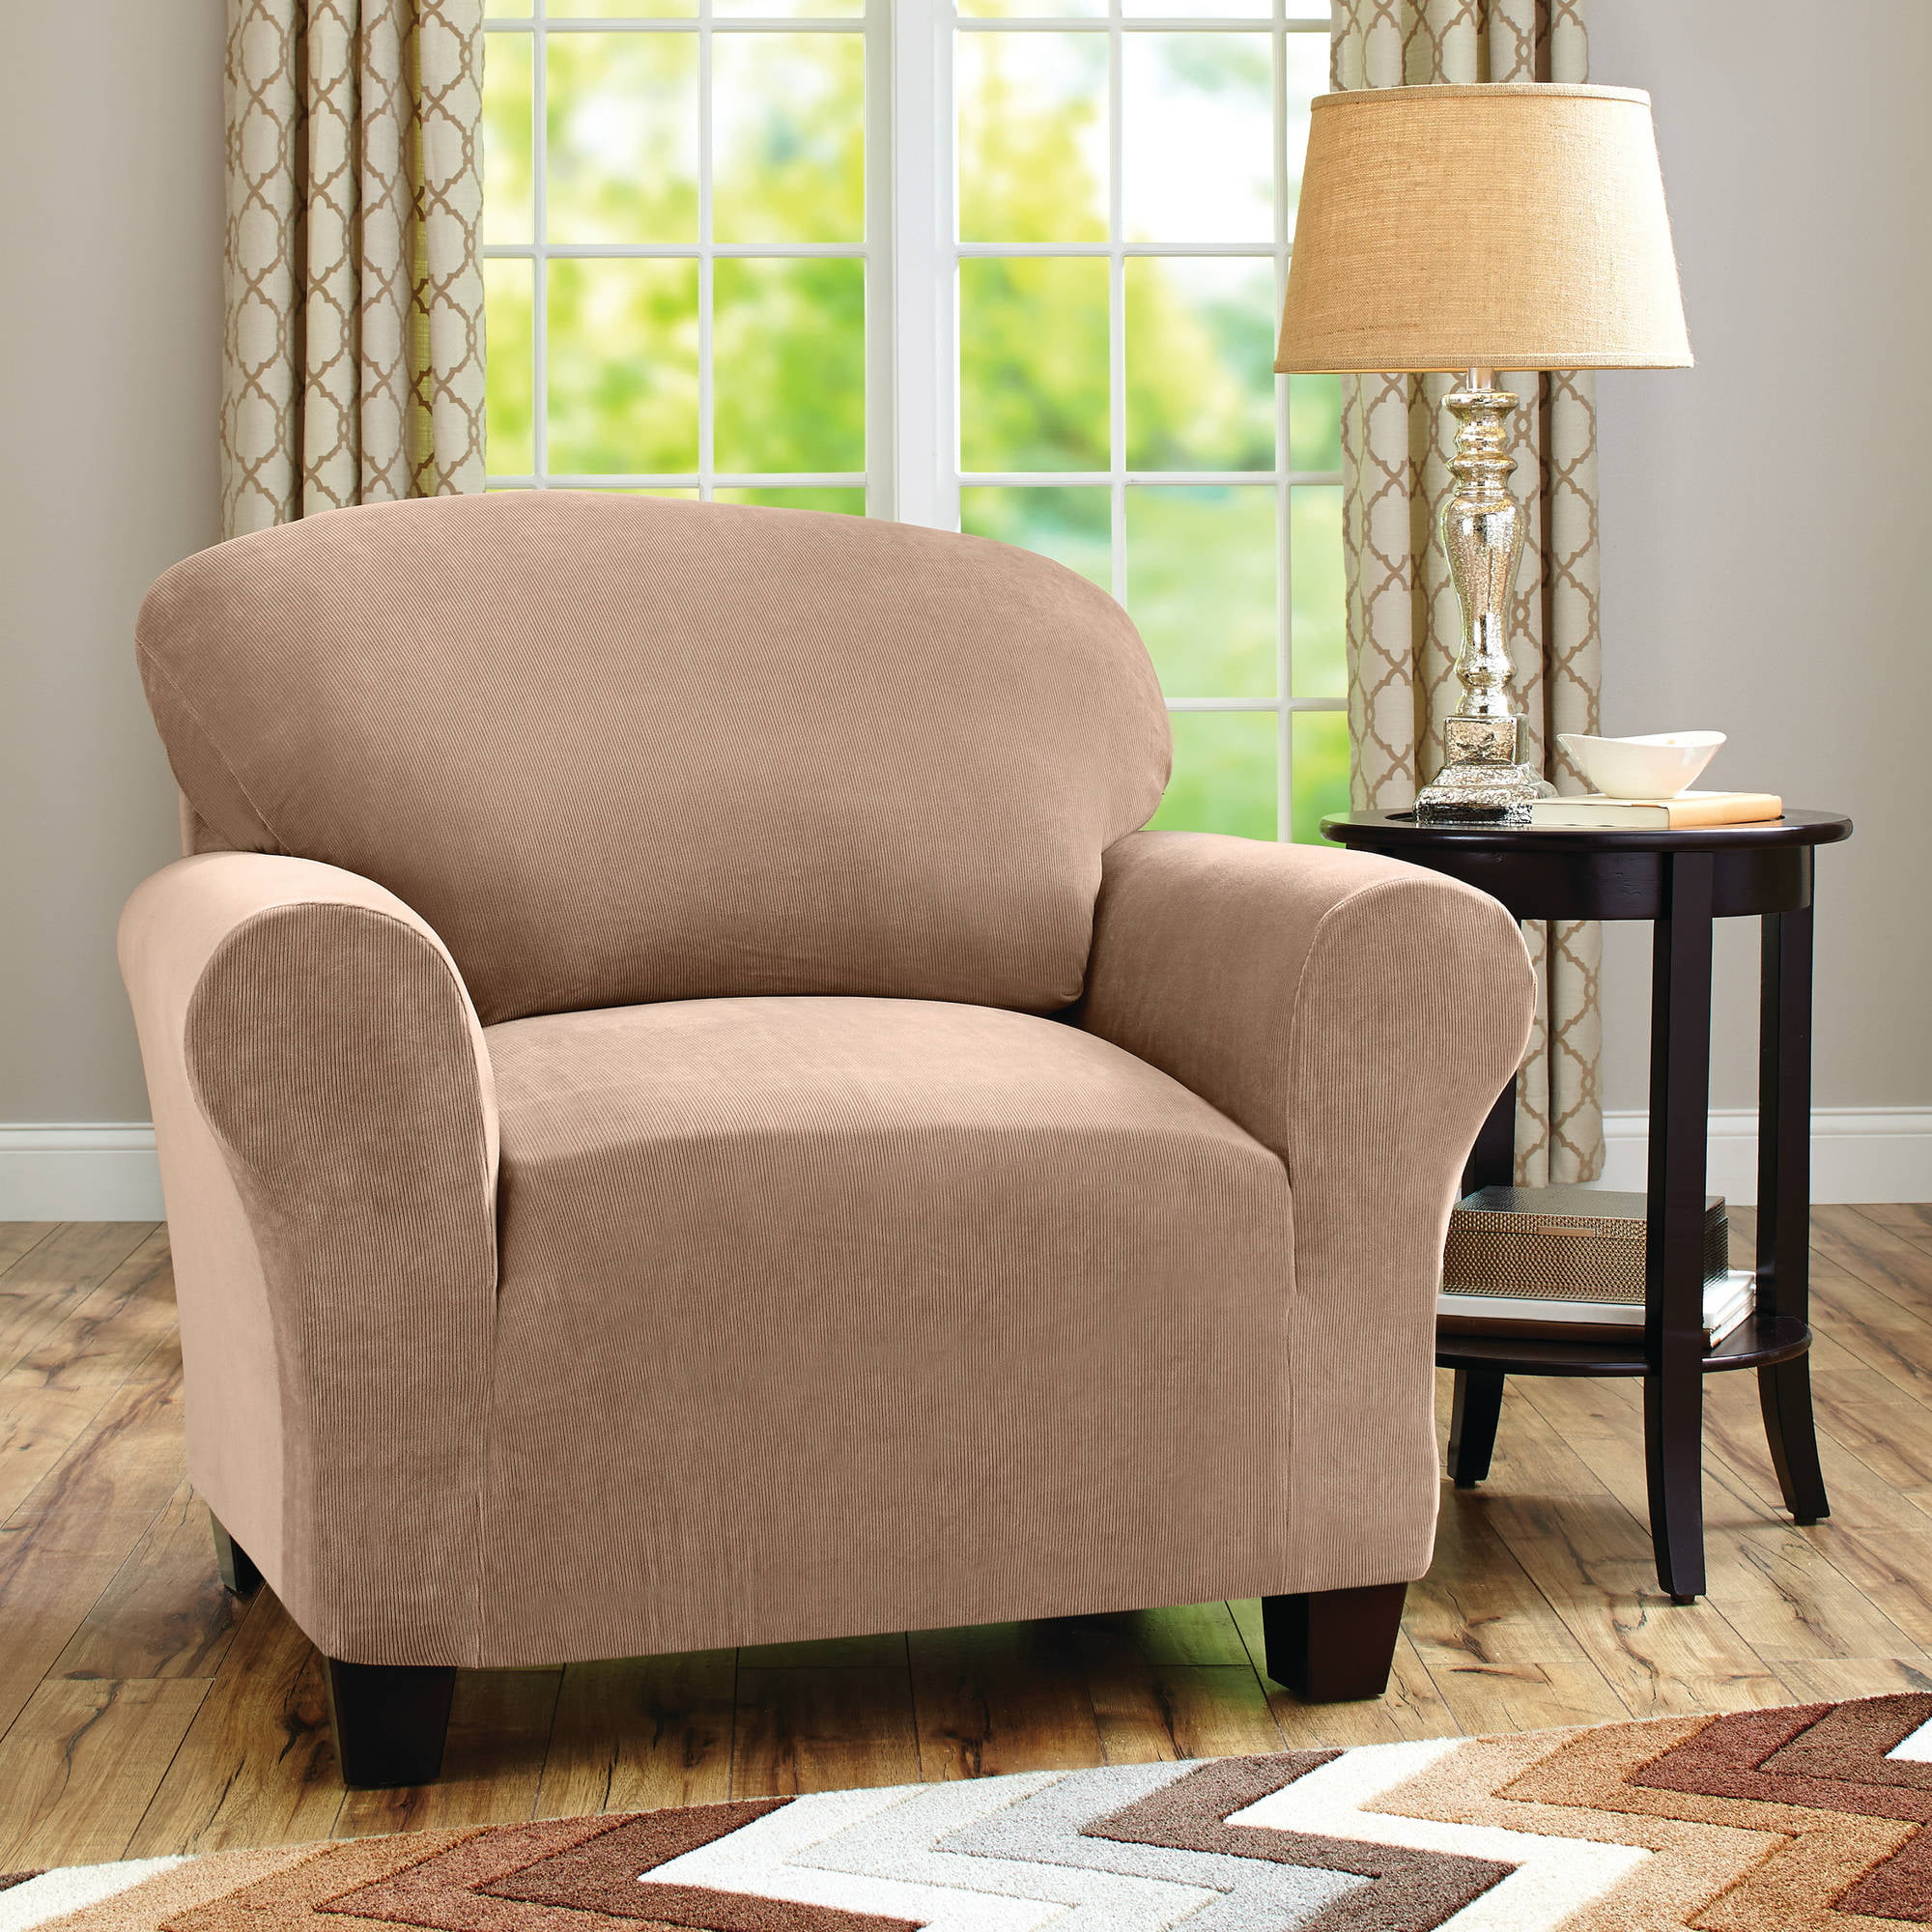 Better Homes and Gardens OnePiece Stretch Fine Corduroy Chair